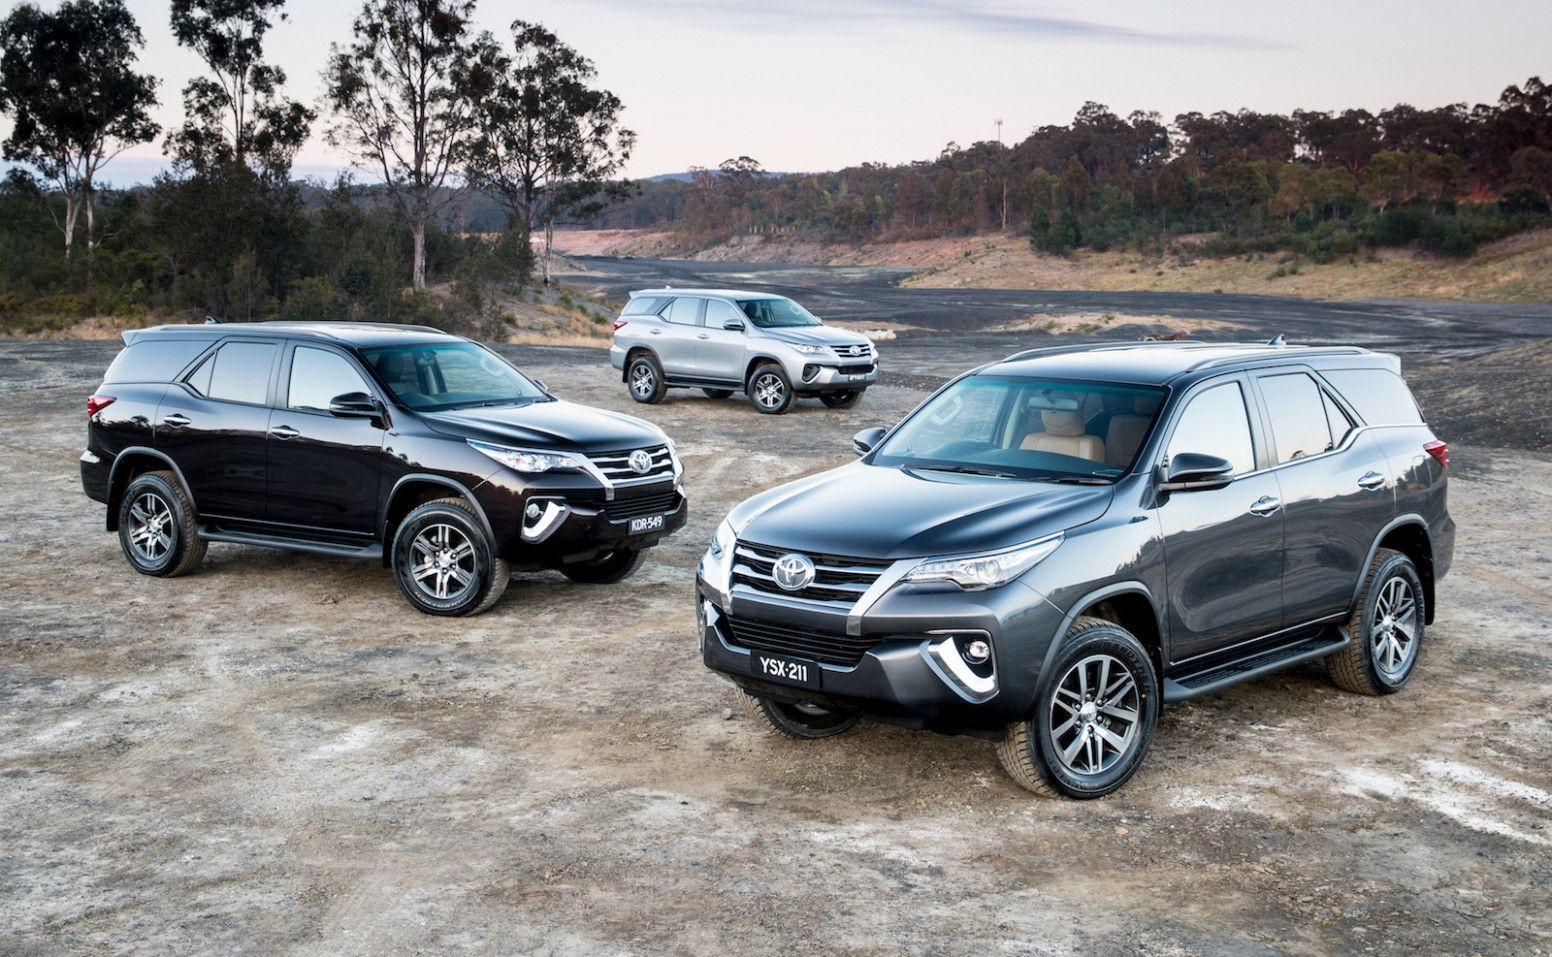 11 Image Toyota Fortuner 2020 in 2020 Toyota, Toyota